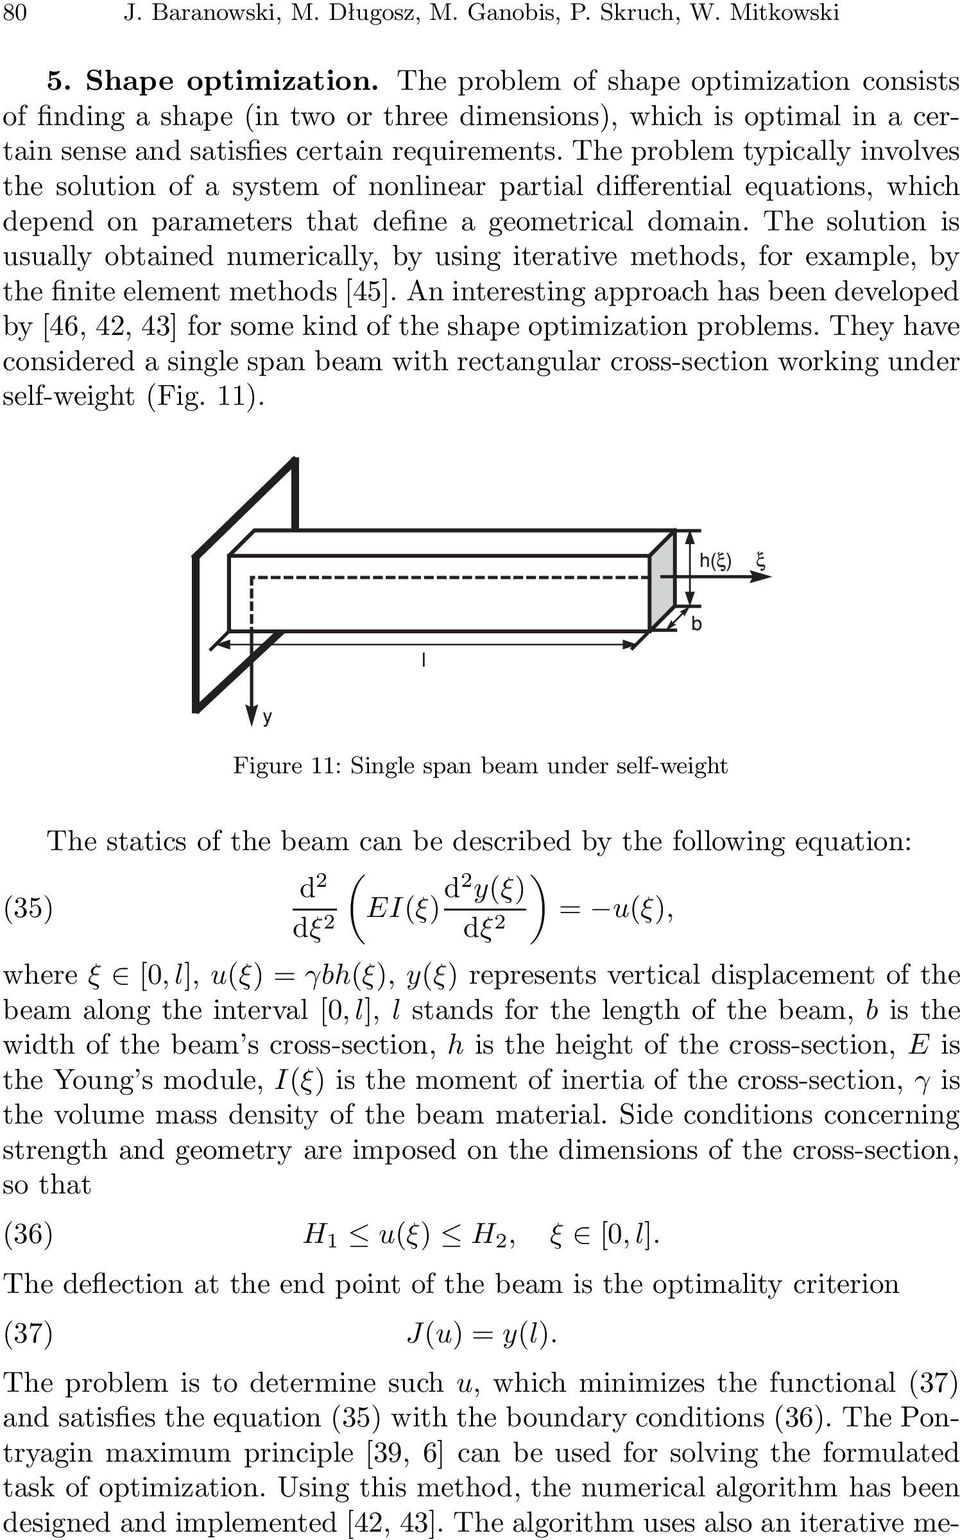 The problem typically involves the solution of a system of nonlinear partial differential equations, which depend on parameters that define a geometrical domain.